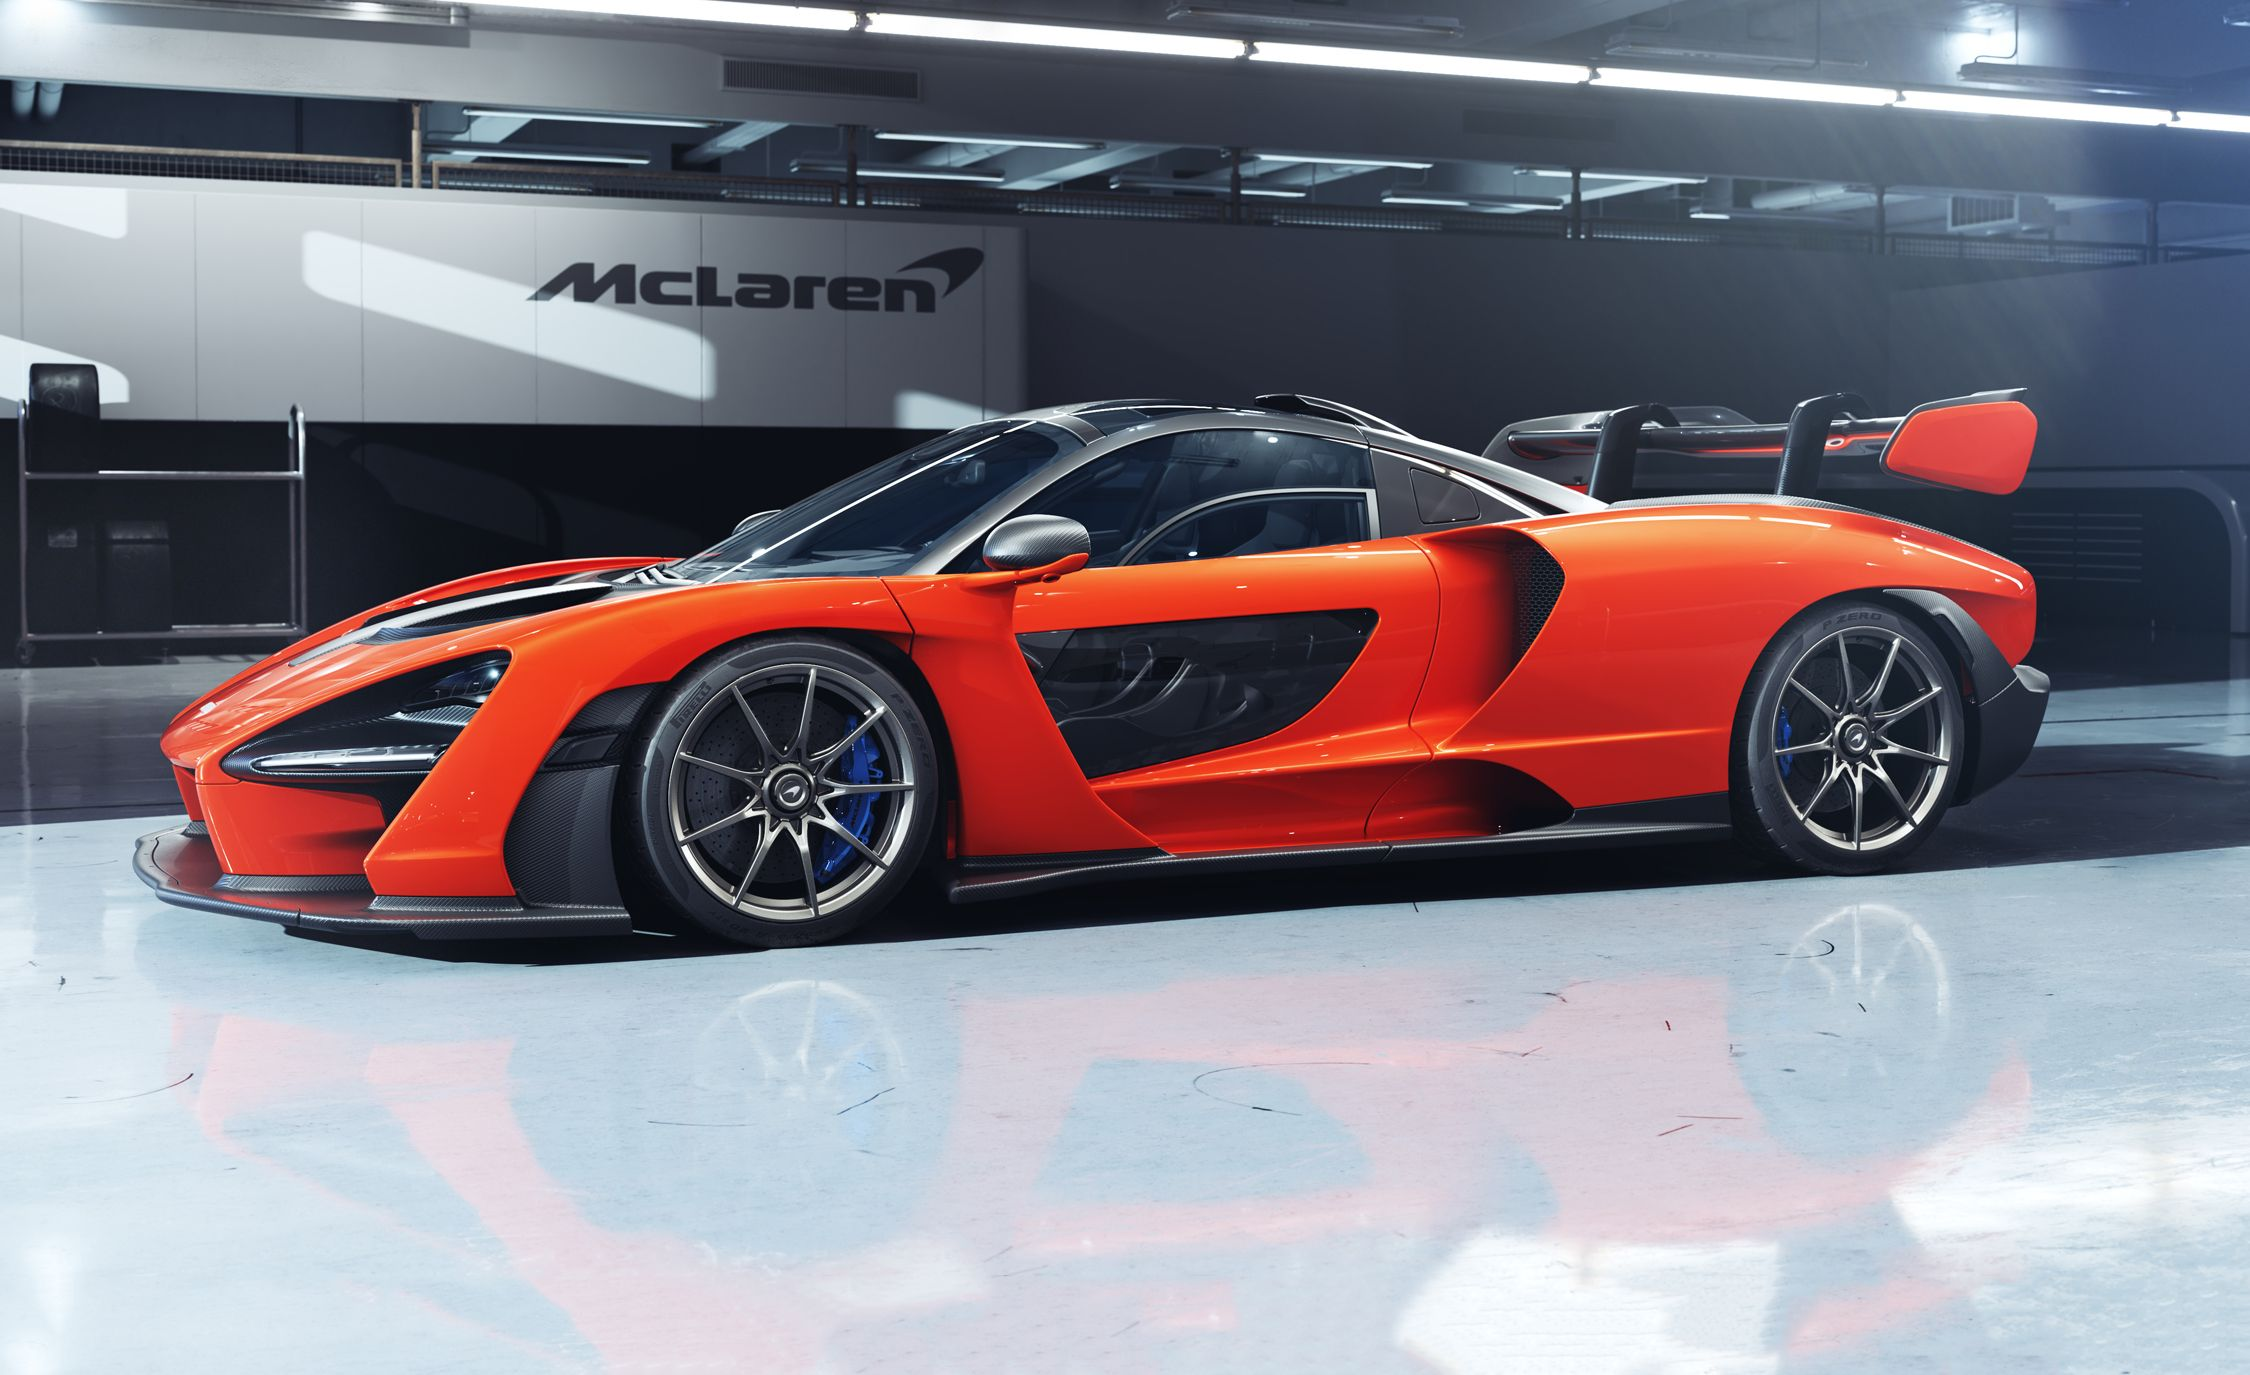 2019 mclaren senna hypercar official photos and info | news | car